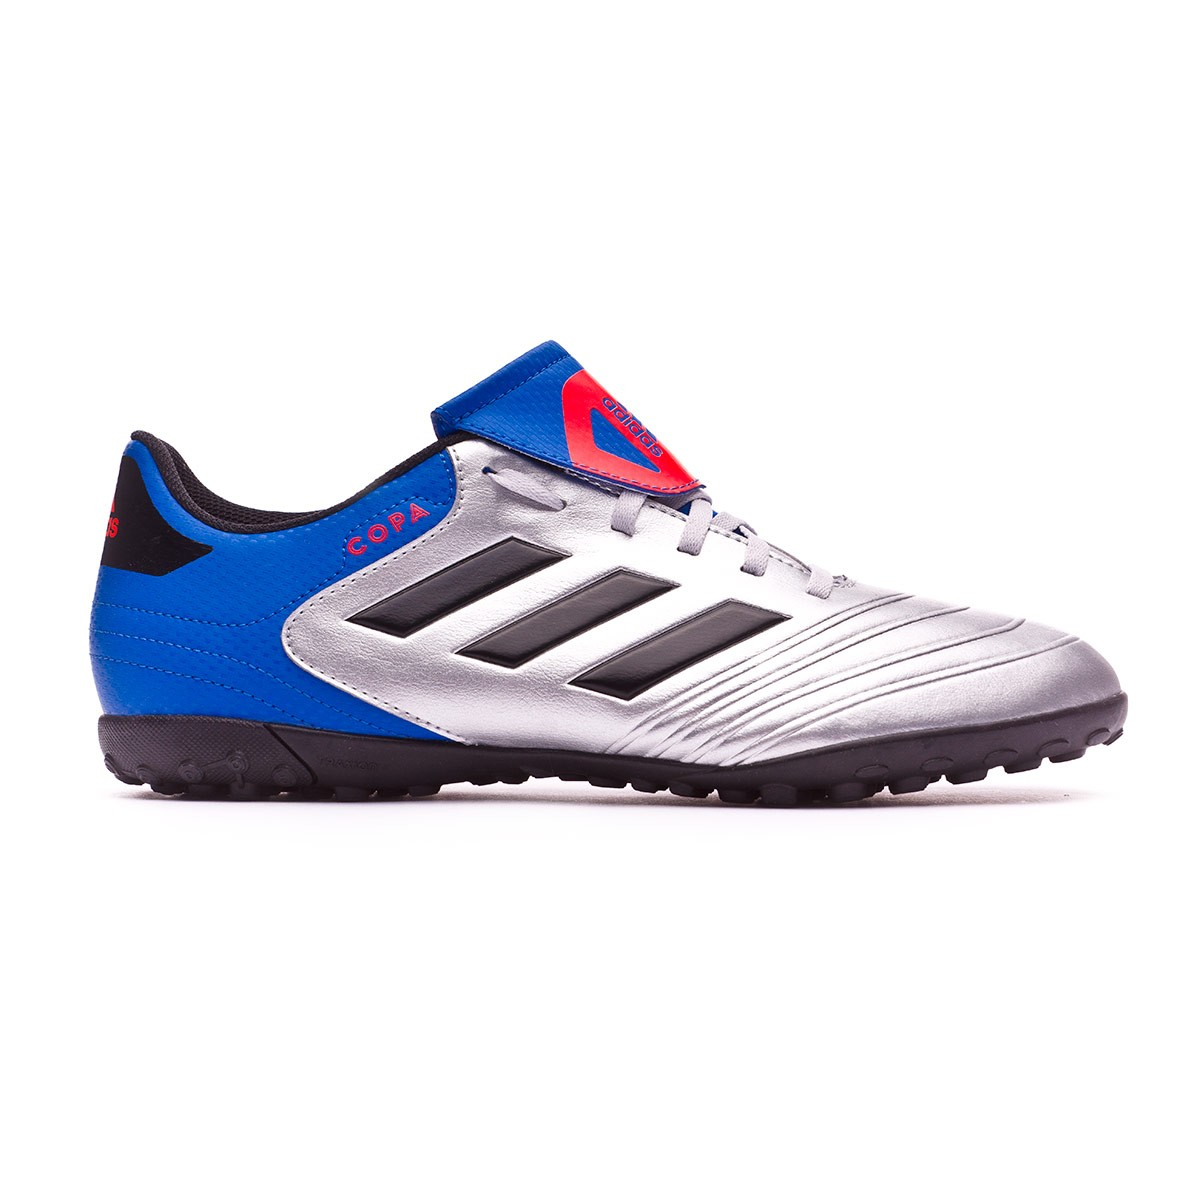 competitive price cffef 092cf Football Boot adidas Copa Tango 18.4 Turf Silver metallic-Core  black-Football blue - Leaked soccer